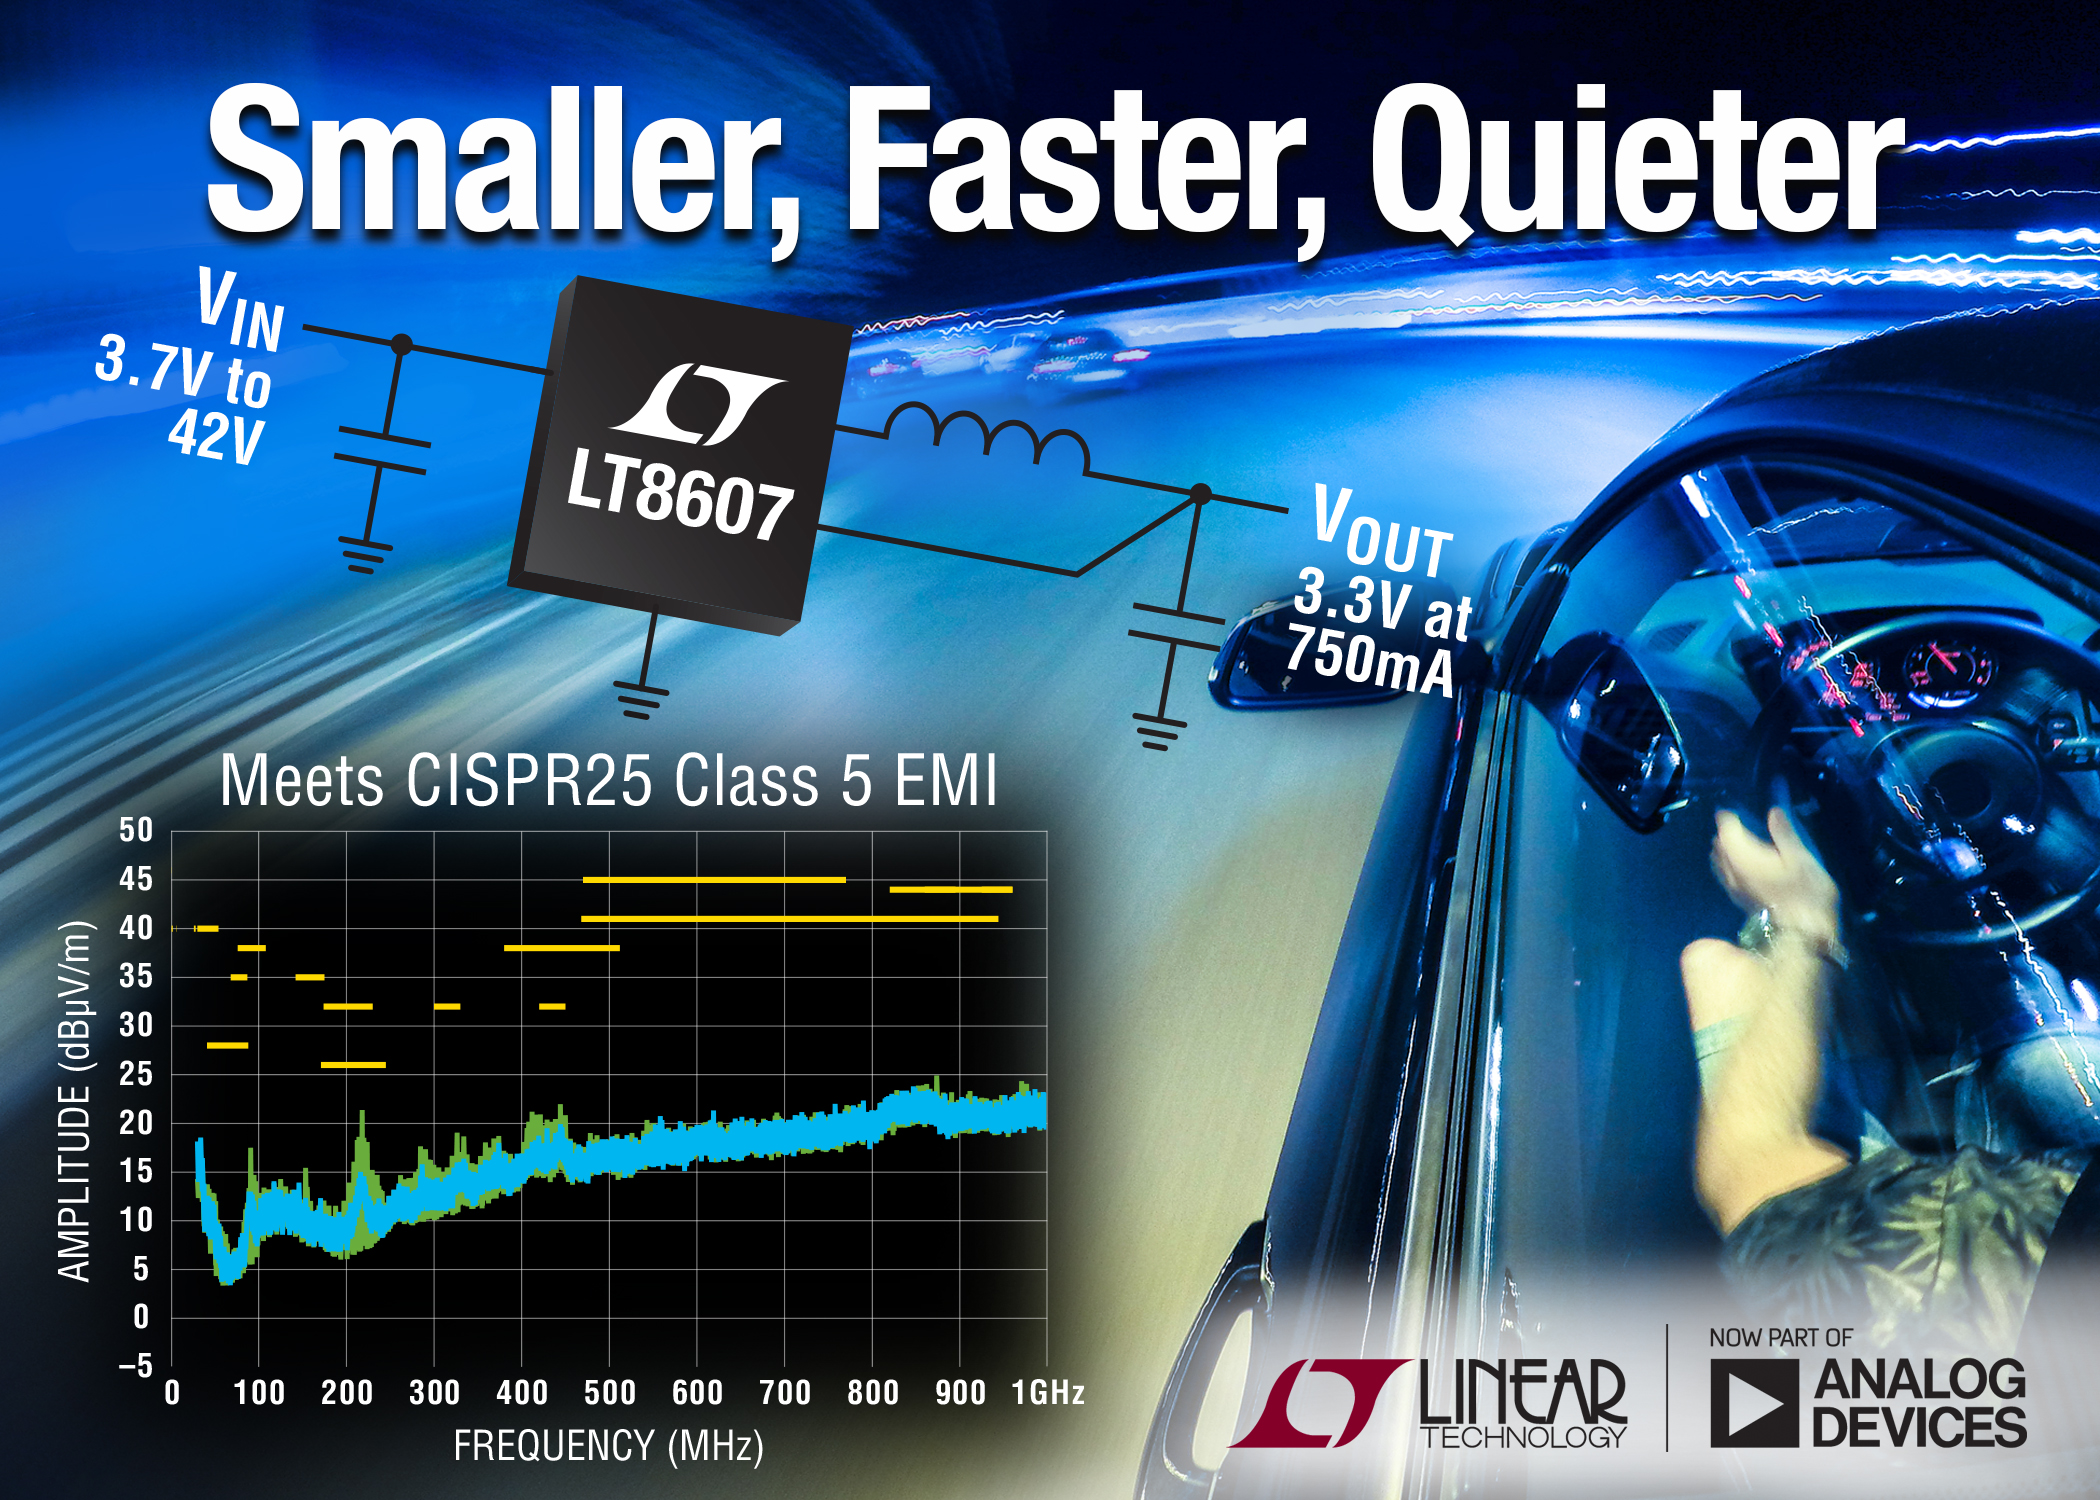 DC/DC Converter Delivers 93% Efficiency at 2MHz from a 2mm x 2mm DFN Package